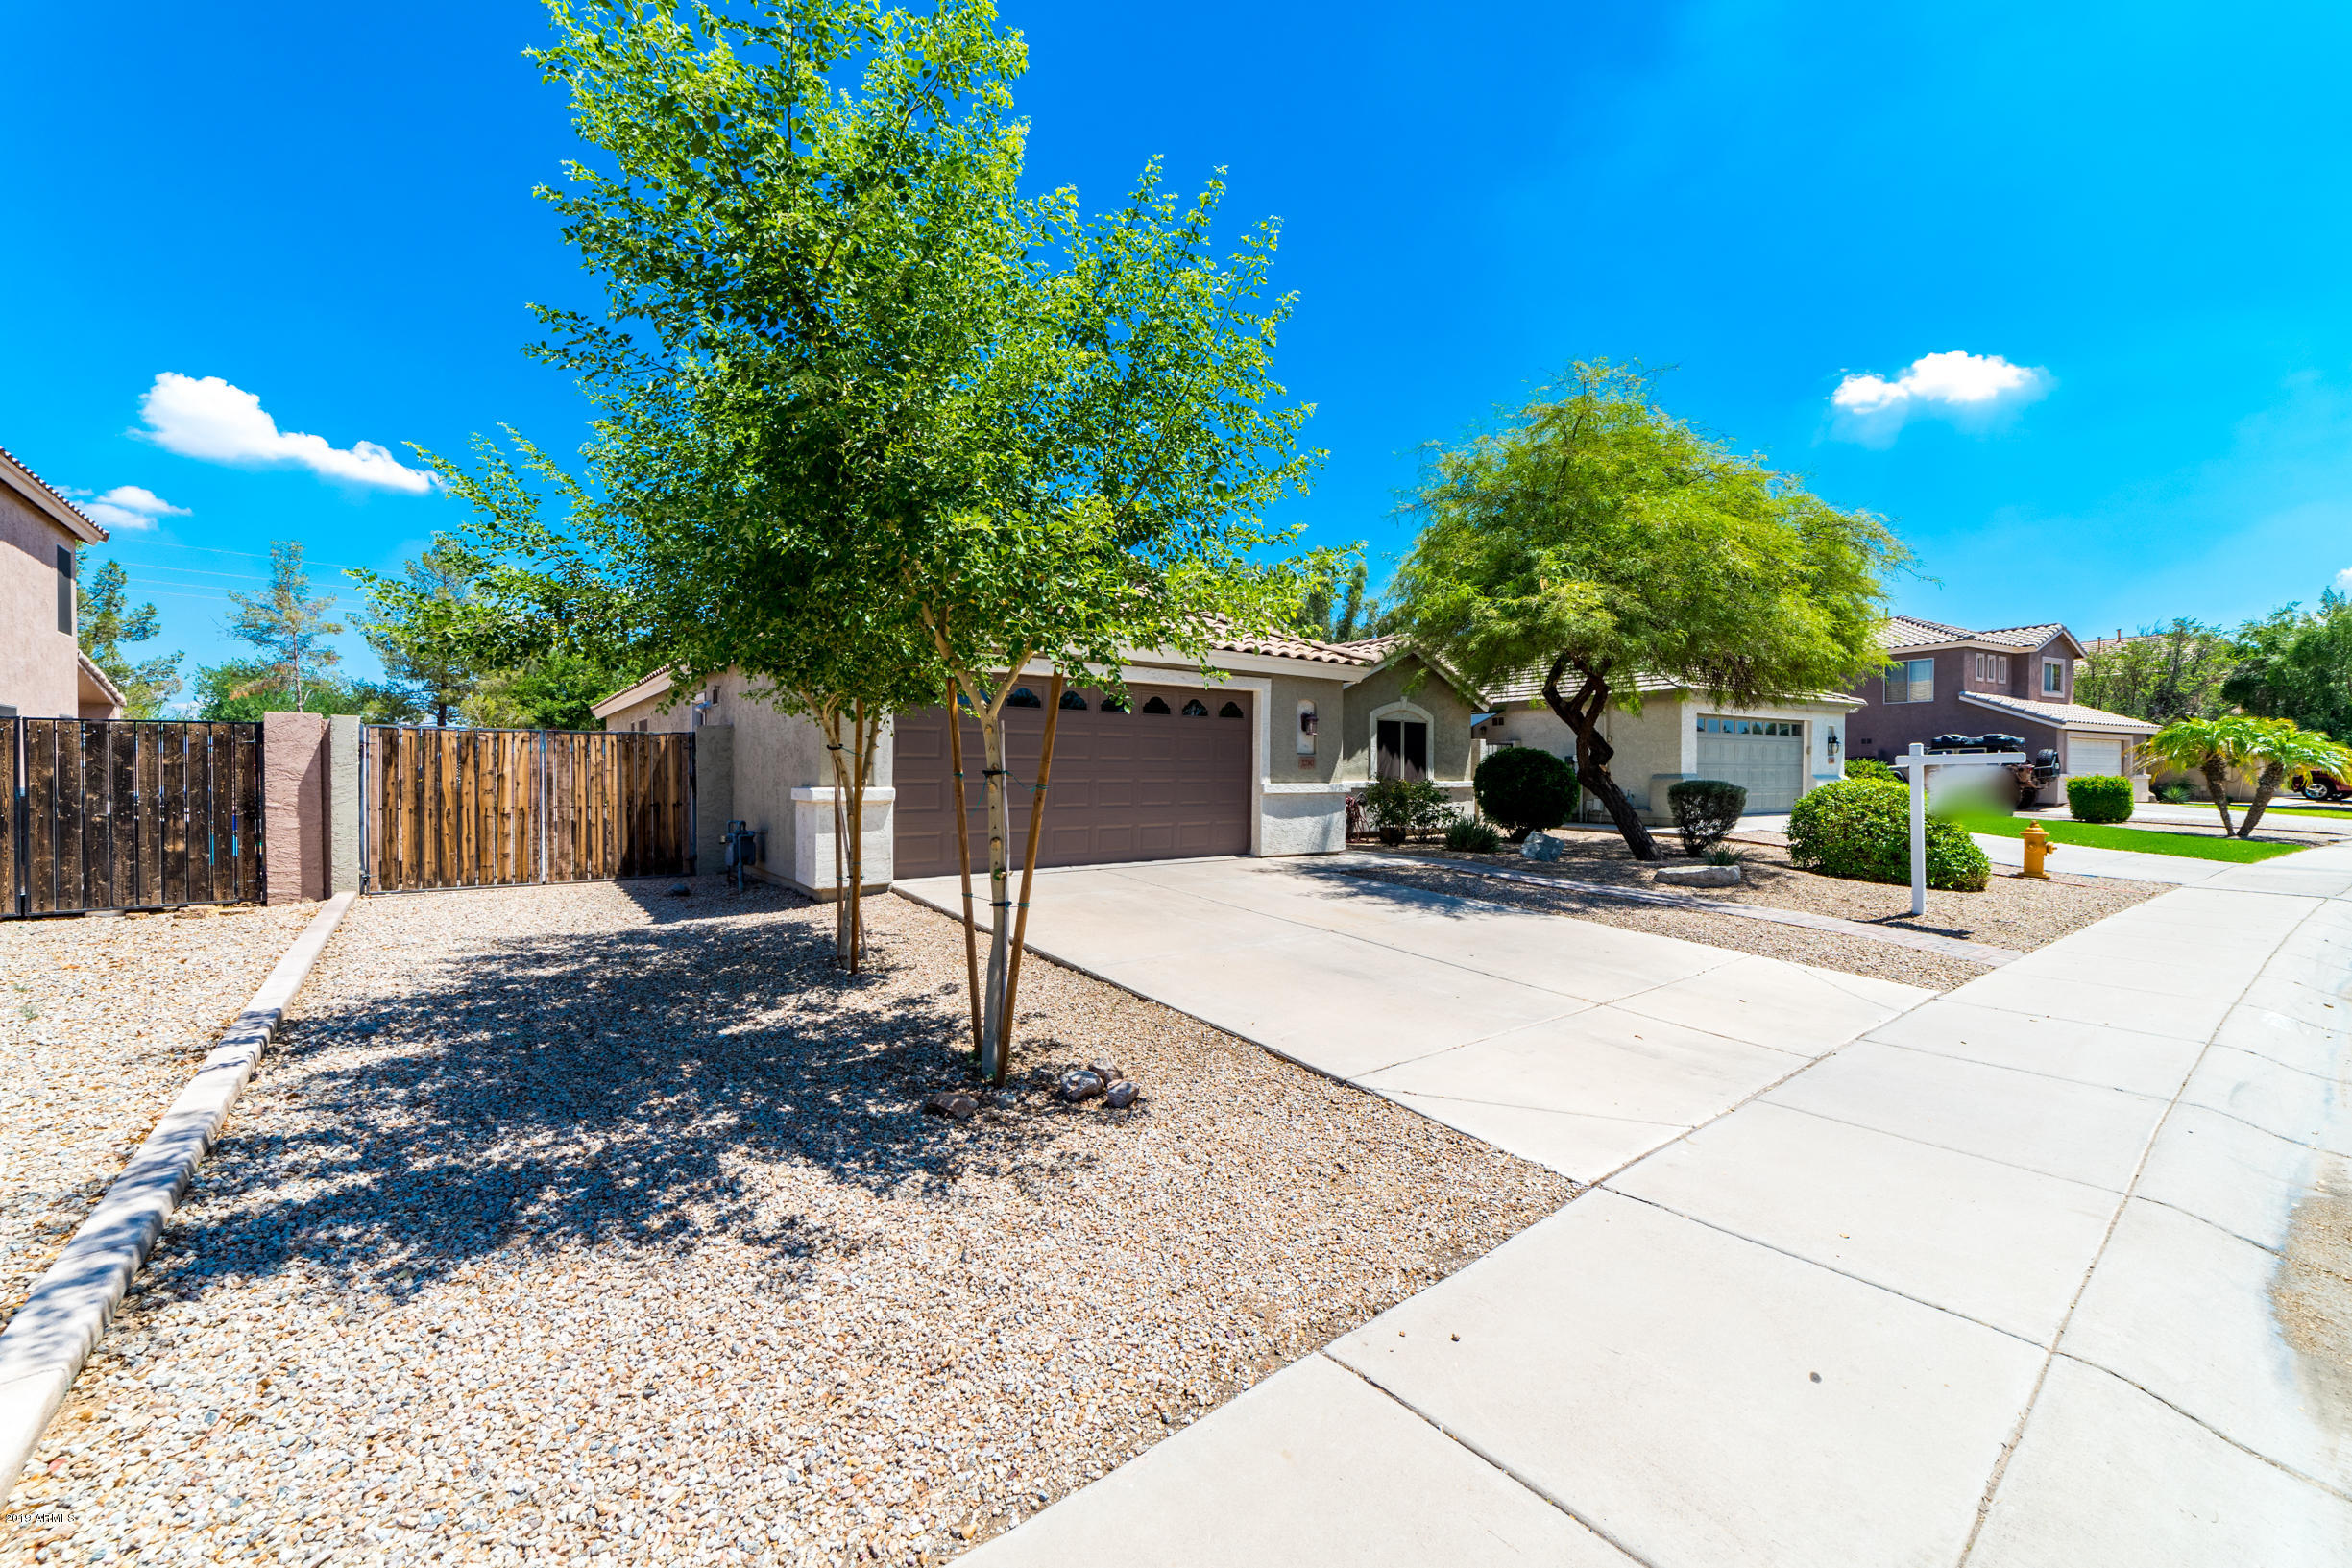 MLS 5962752 2280 E AUGUSTA Avenue, Chandler, AZ 85249 Cooper Commons